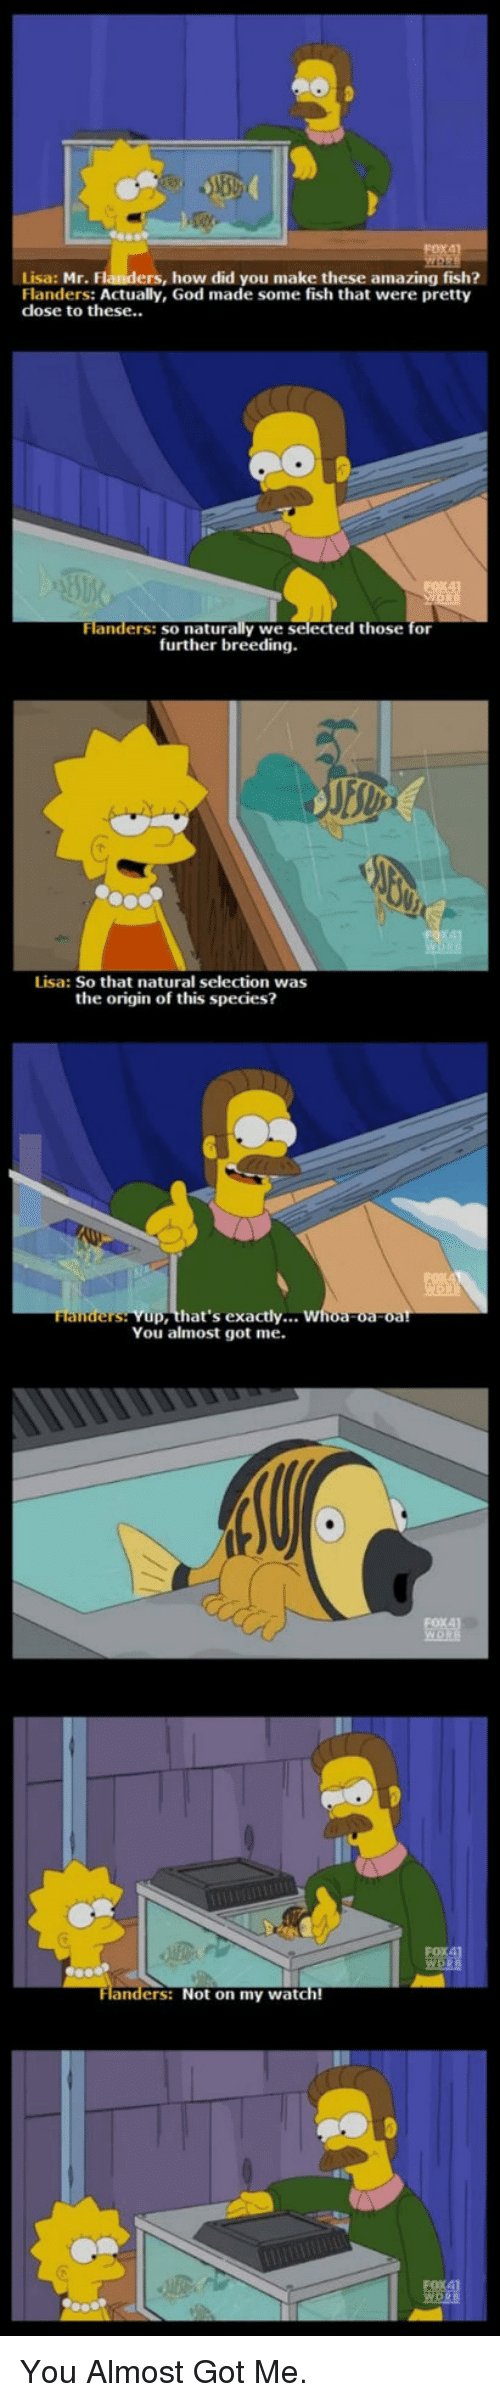 God, Fish, and Watch: Lisa: Mr. Flanders, how did you make these amazing fish?  Flanders: Actually, God made some fish that were pretty  dose to these..  naturally we selected those for  further breeding  Flanders: so  Lisa: So that natural selection was  the origin of this species?  hat's exactly...  You almost got me.  ers: Not on my watch! <p>You Almost Got Me.</p>